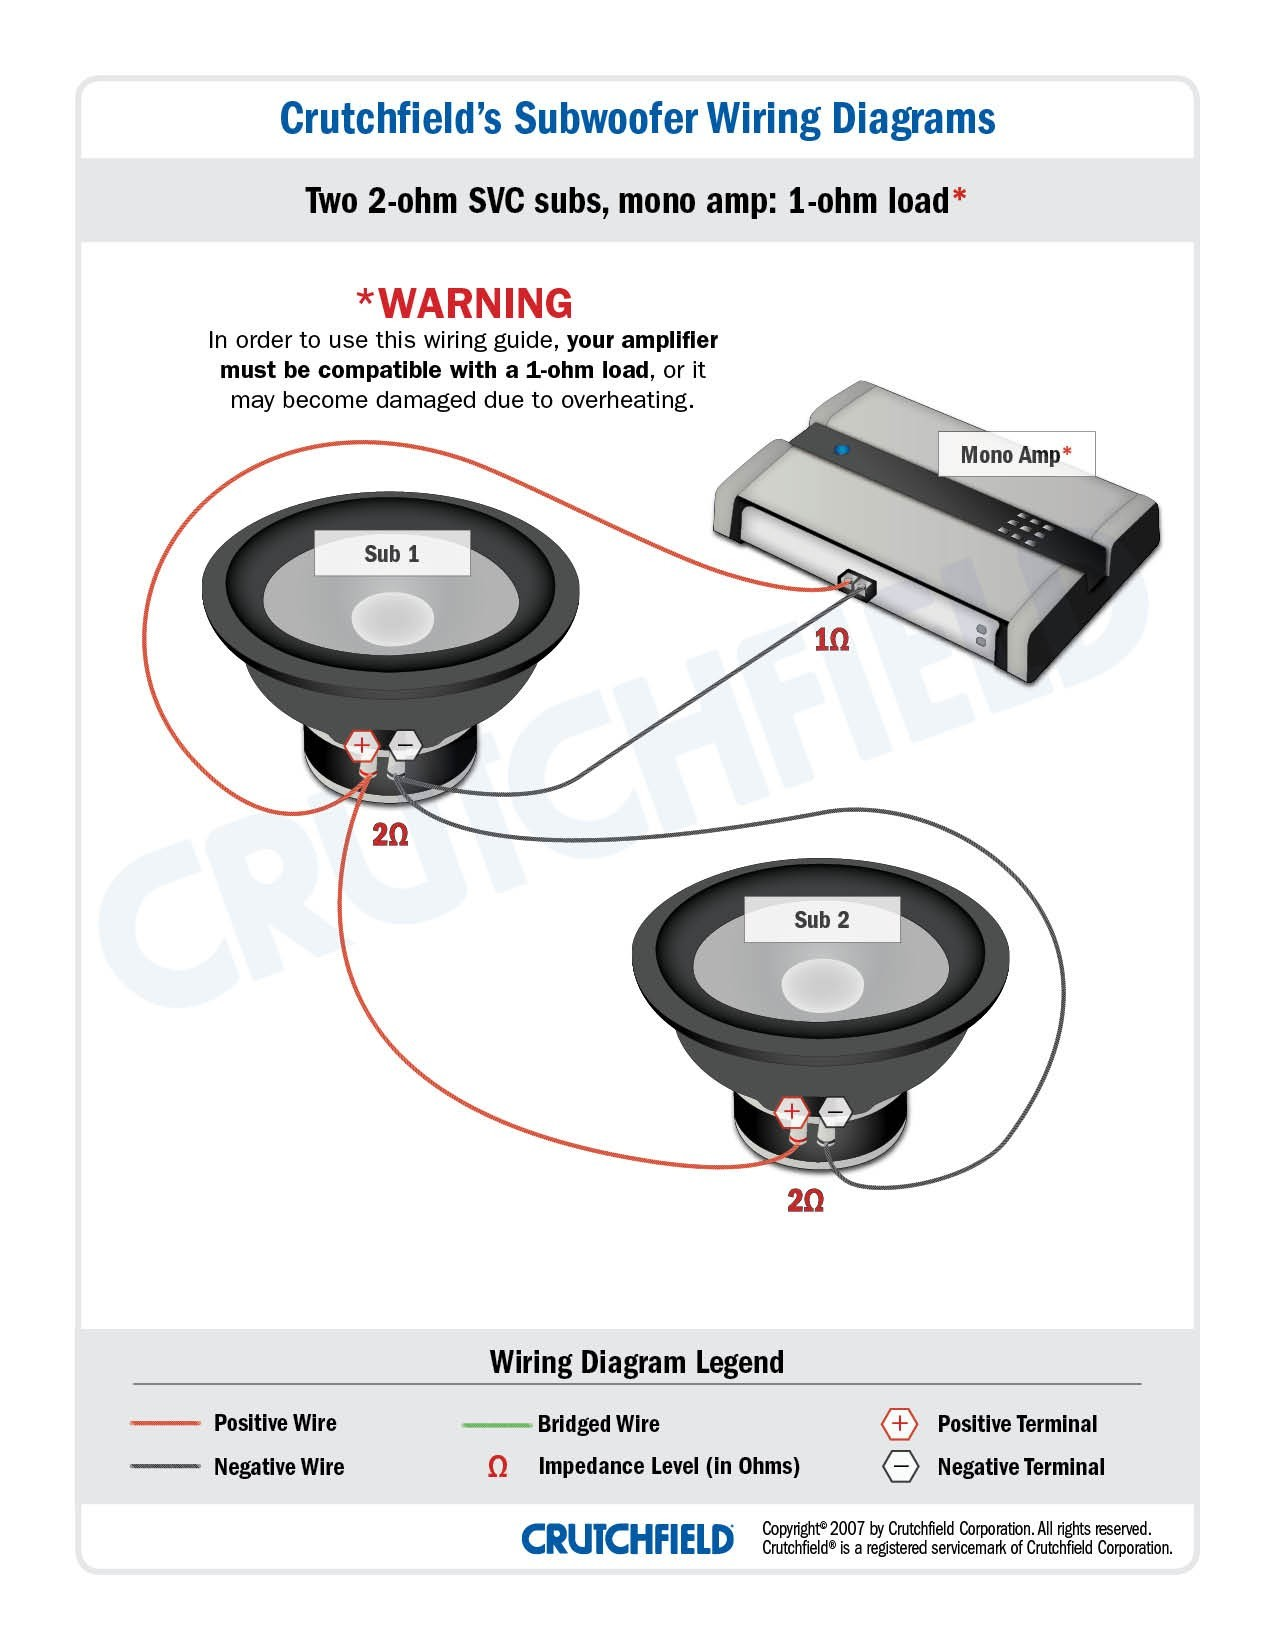 Wire Gauge Chart Crutchfield Best Subwoofer Wiring Diagrams — How to Wire Your Subs